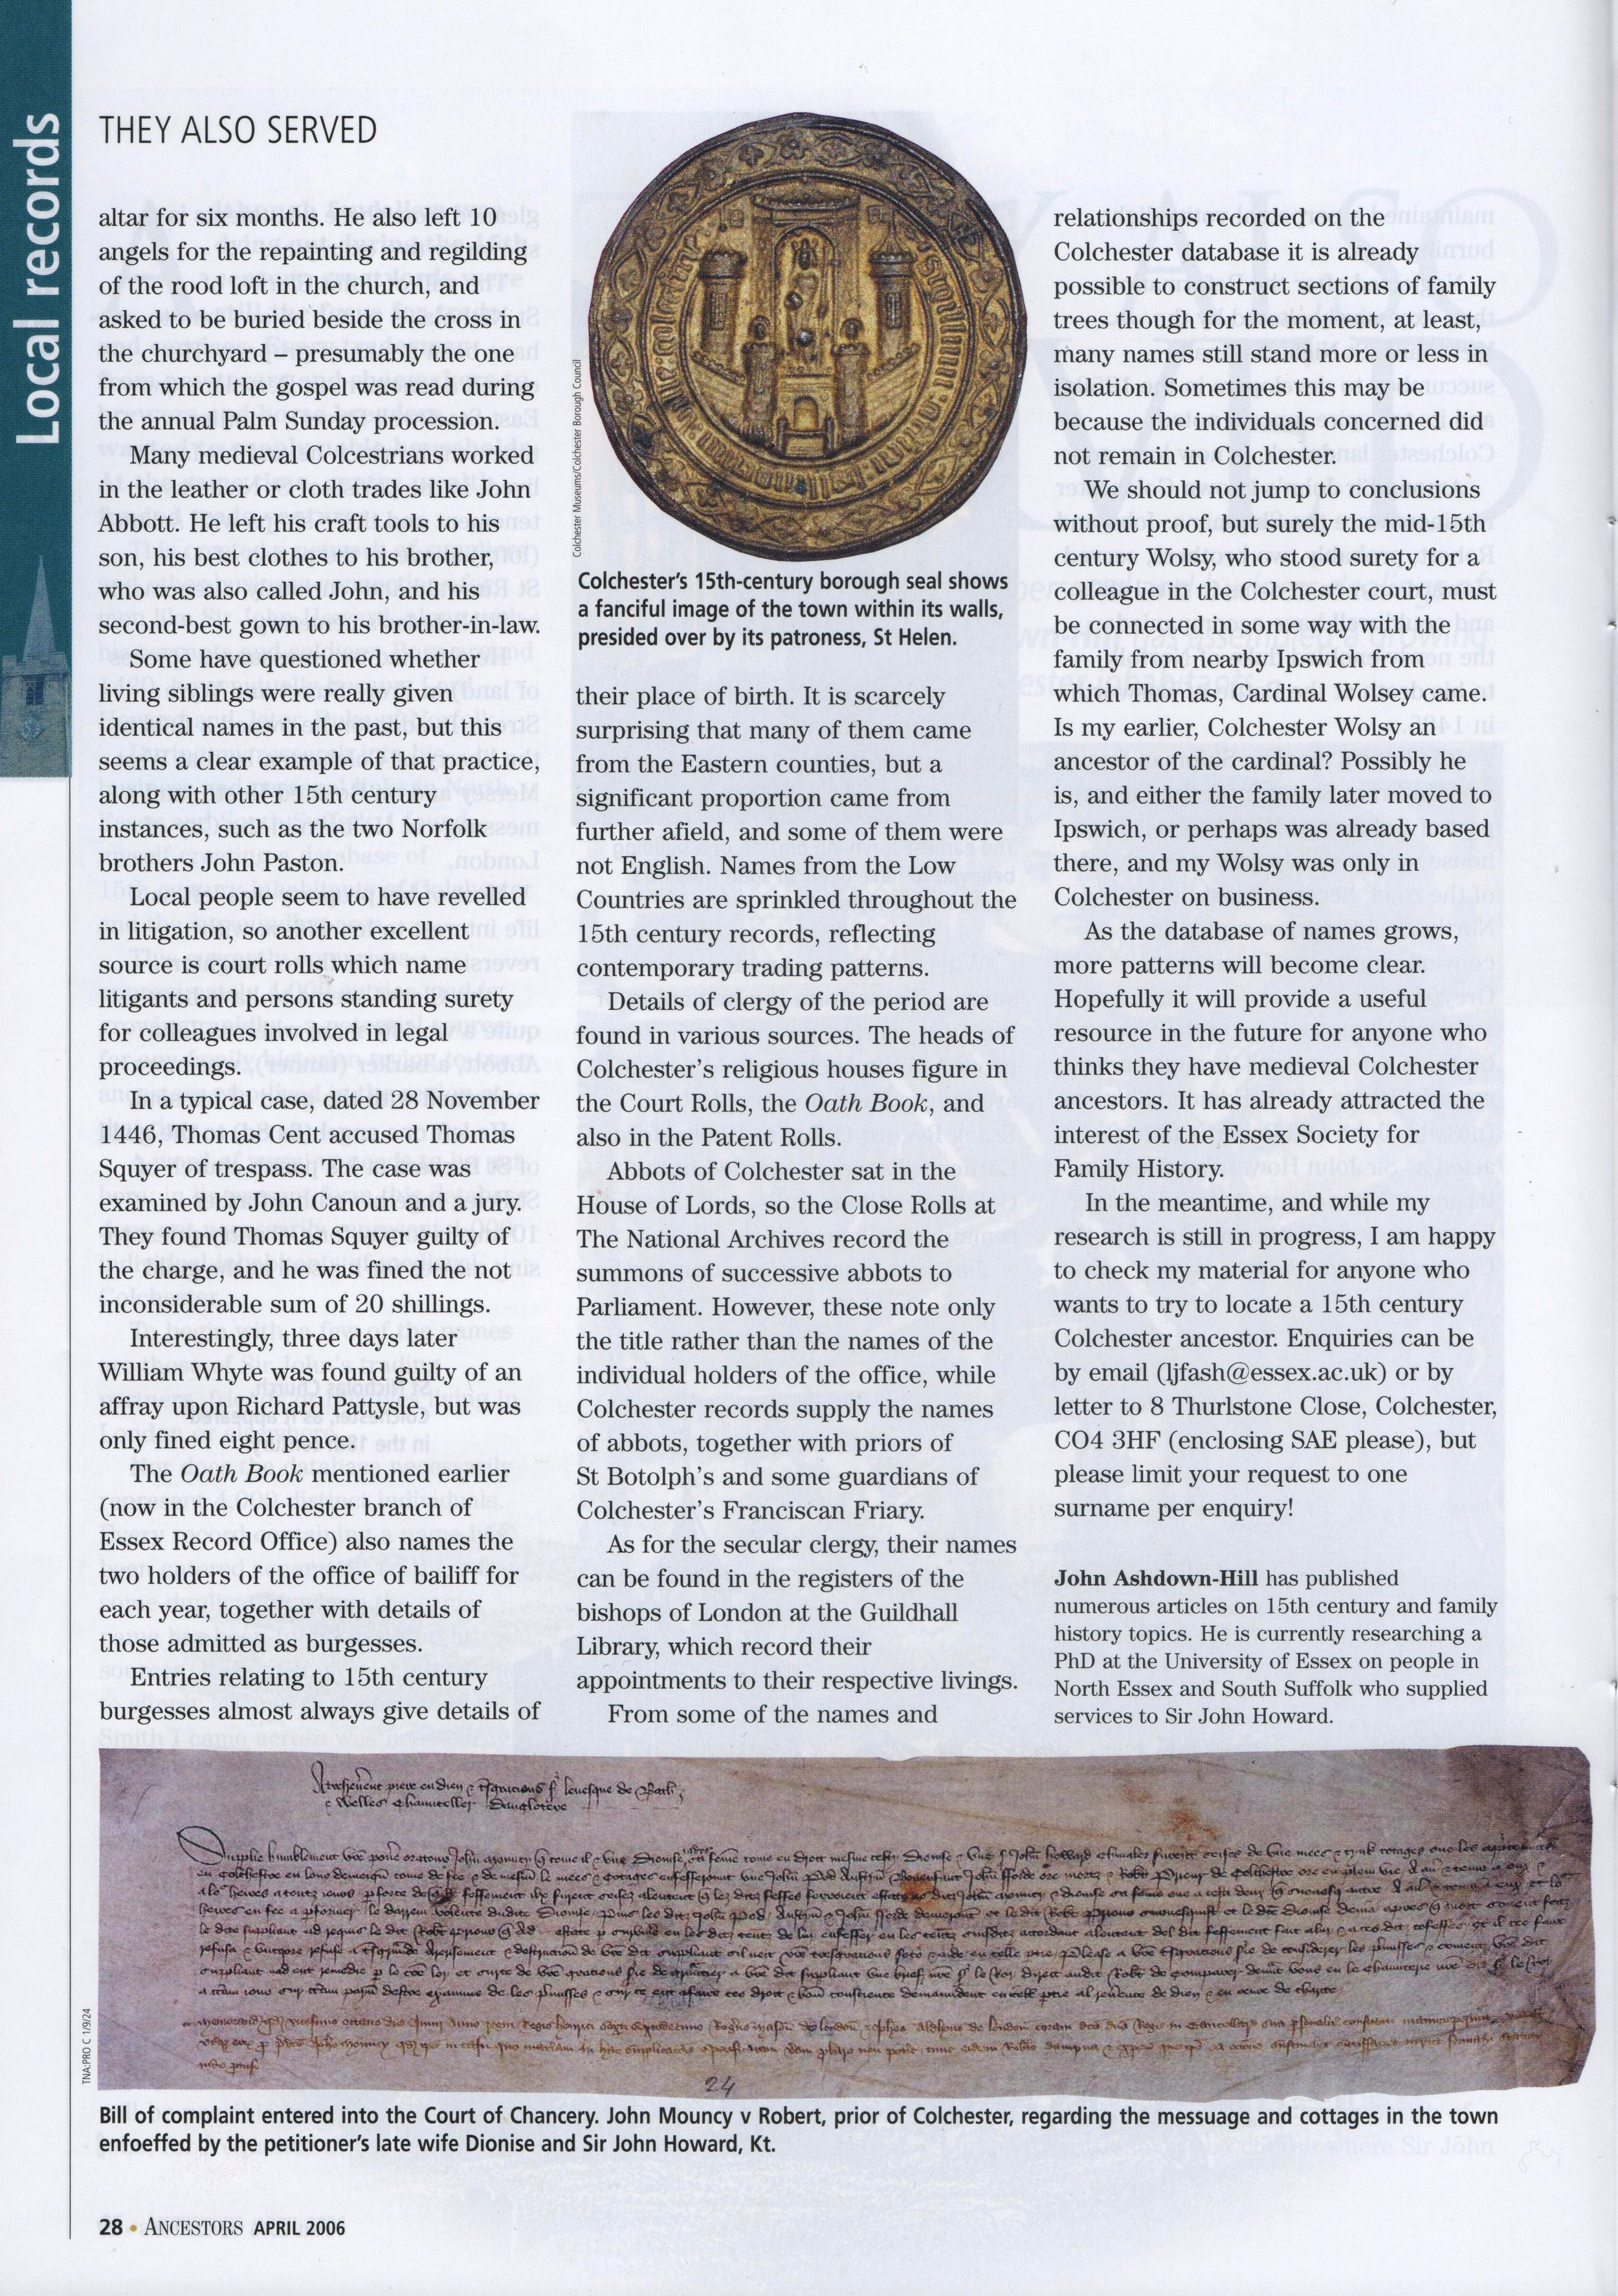 Ancestors magazine April 2006, p. 28.jpg